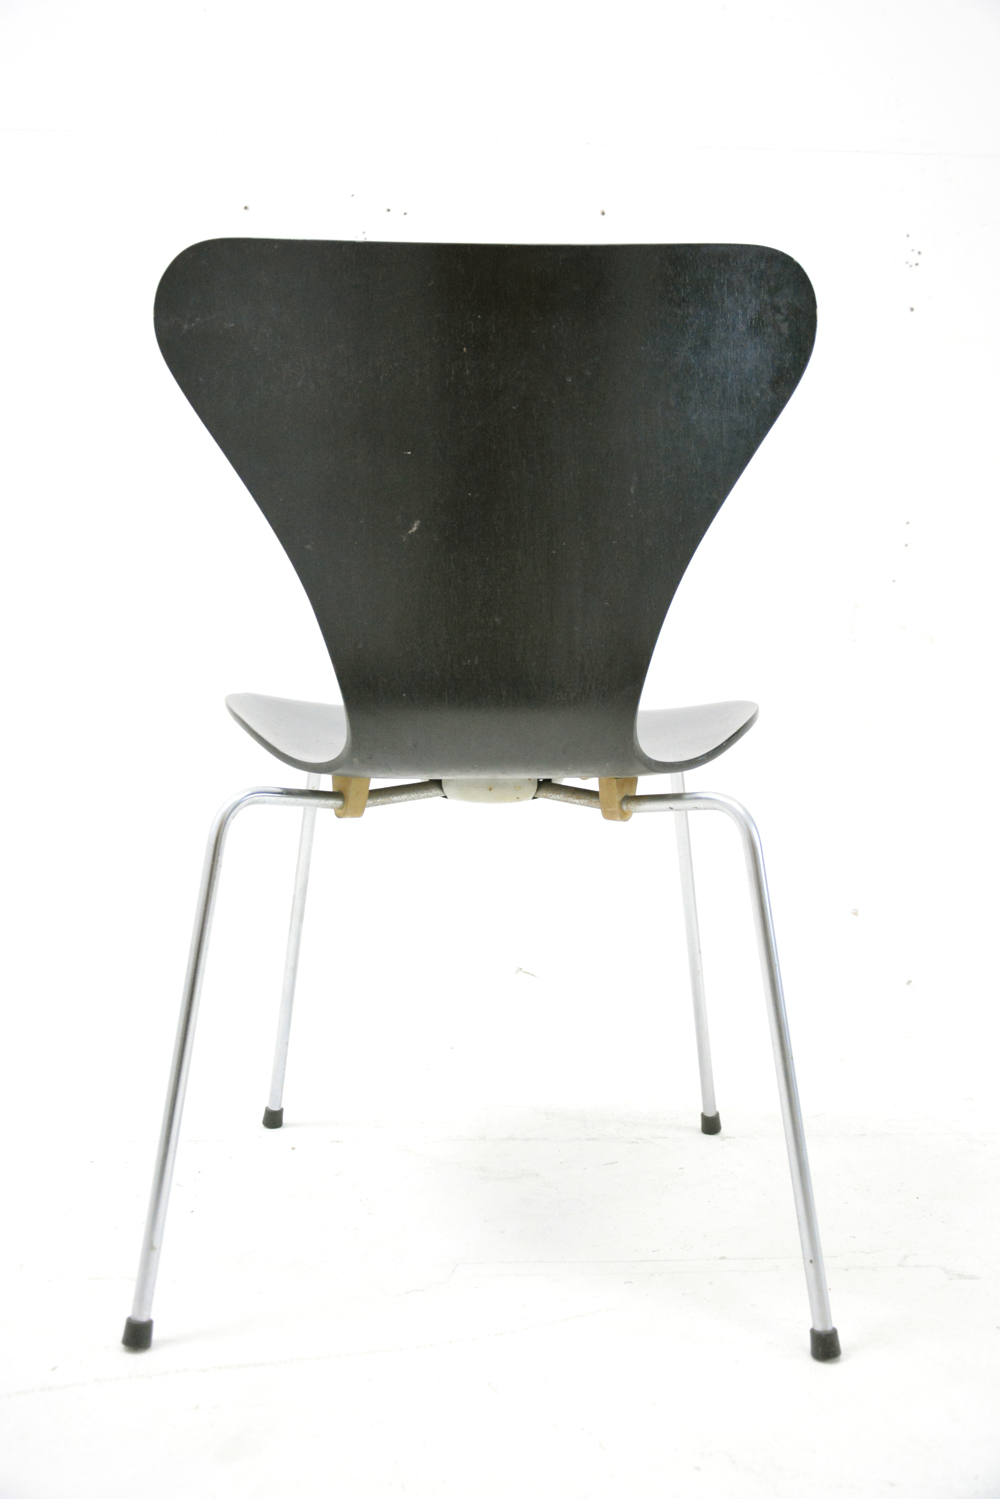 Arne Jacobsen Chairs Series 3107 Black Danish Homestore